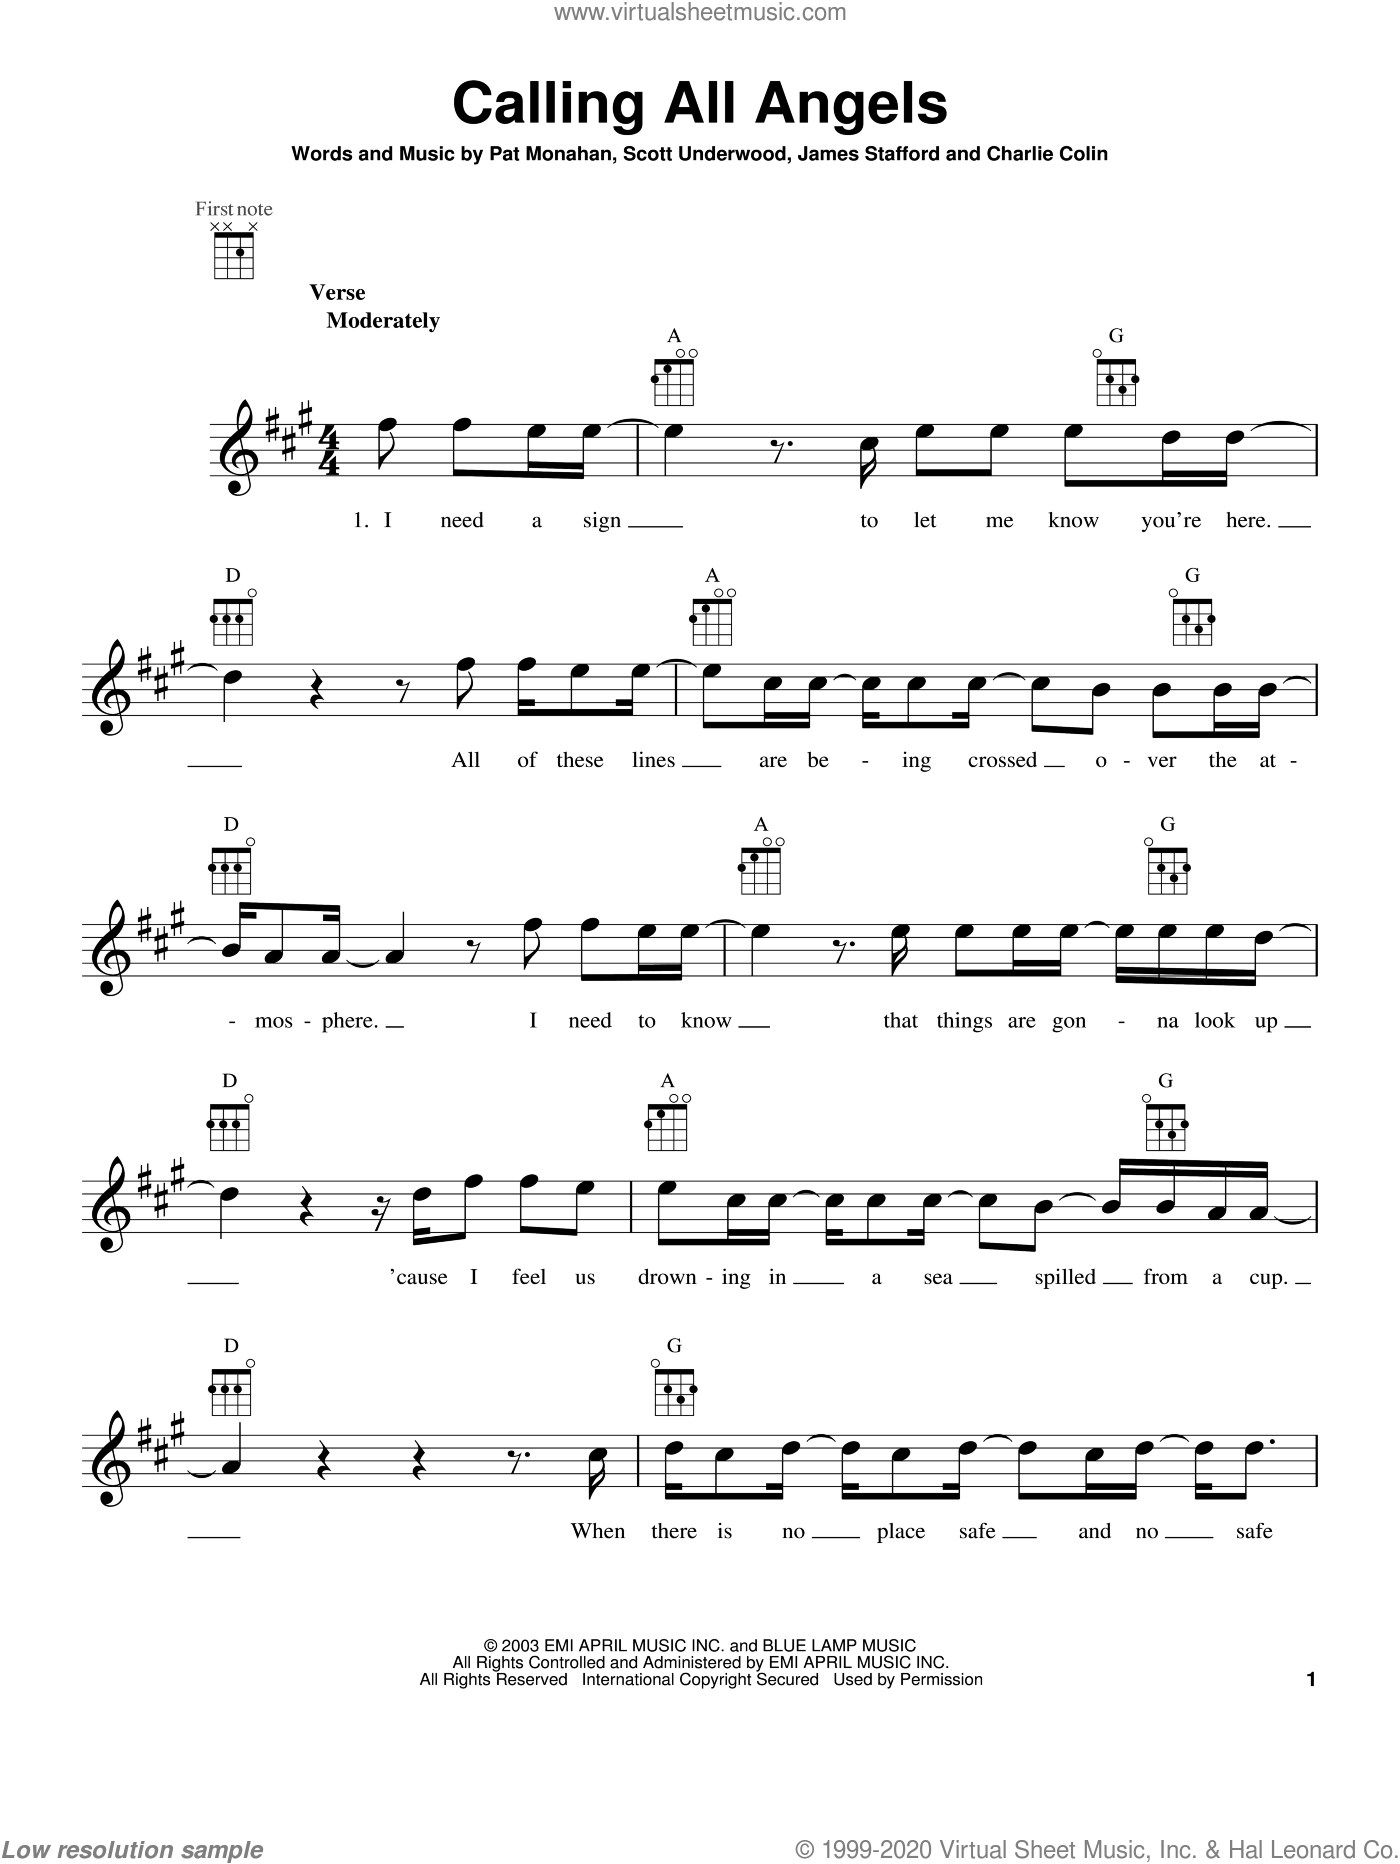 Calling All Angels sheet music for ukulele by Train